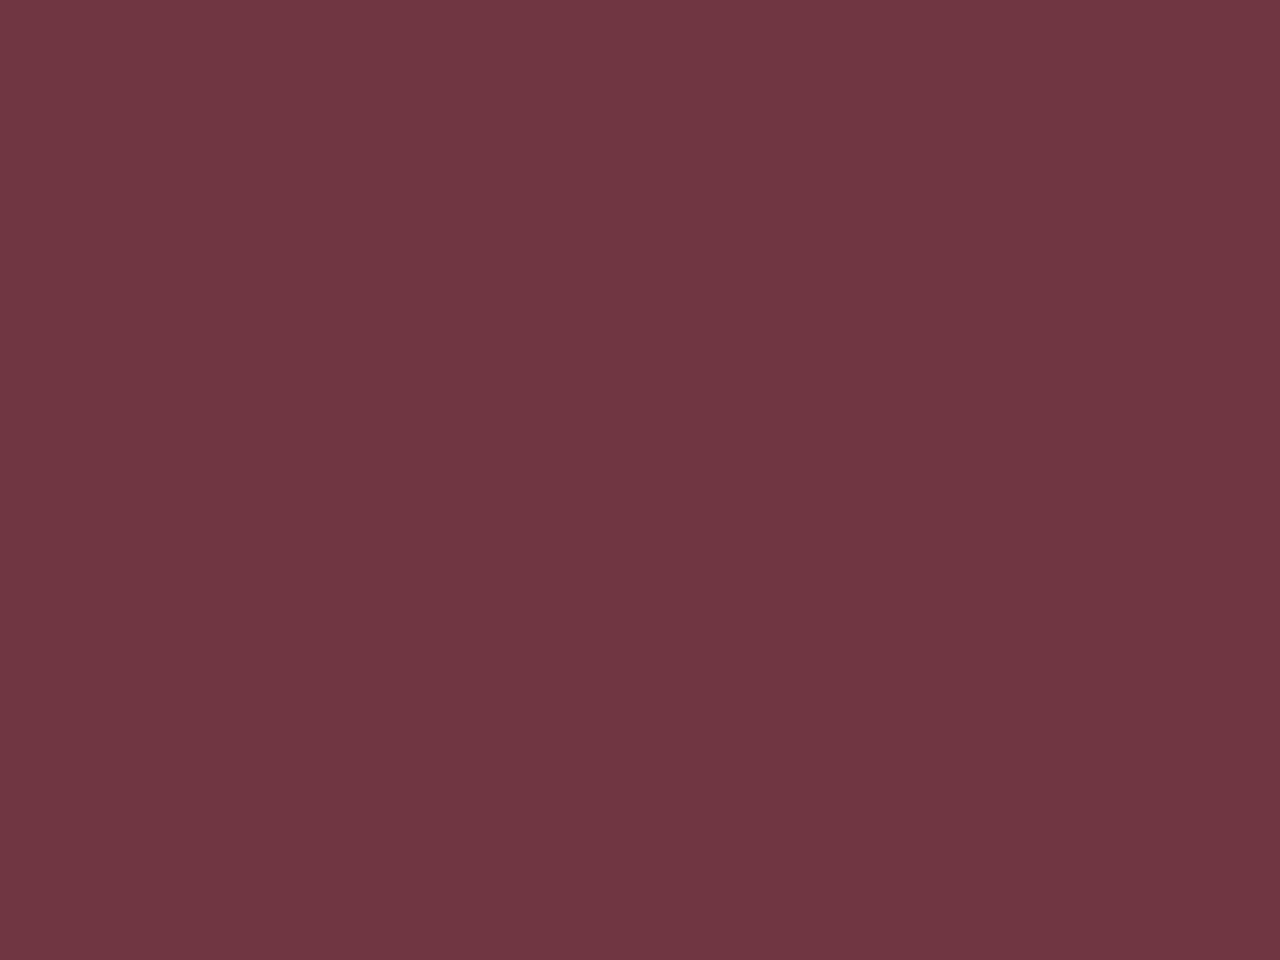 1280x960 Catawba Solid Color Background